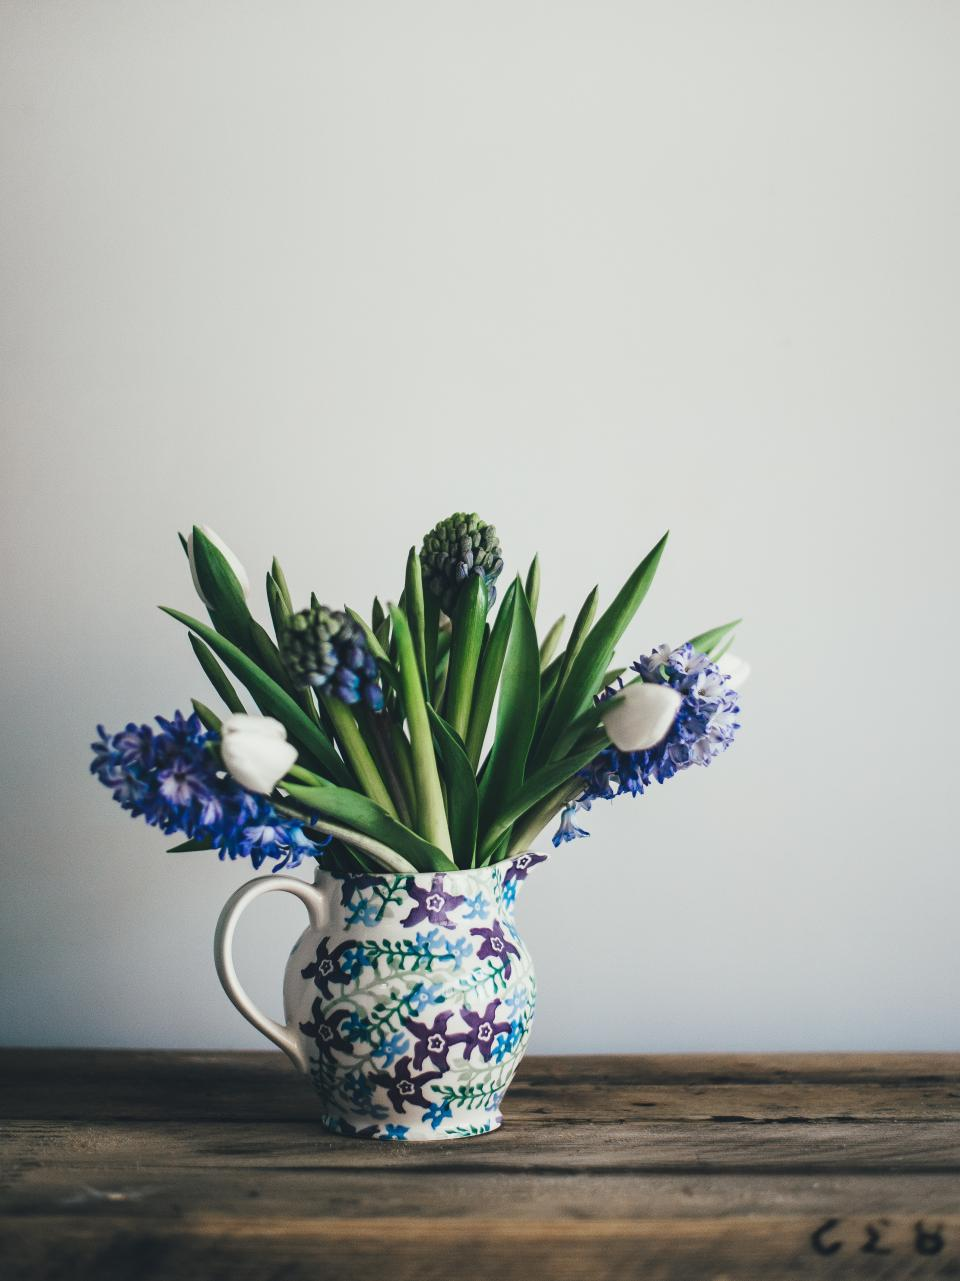 vase, flower, lavender, leaves, plant, small, wall, table, wood, autumn, petals, nature, bloom, decoration